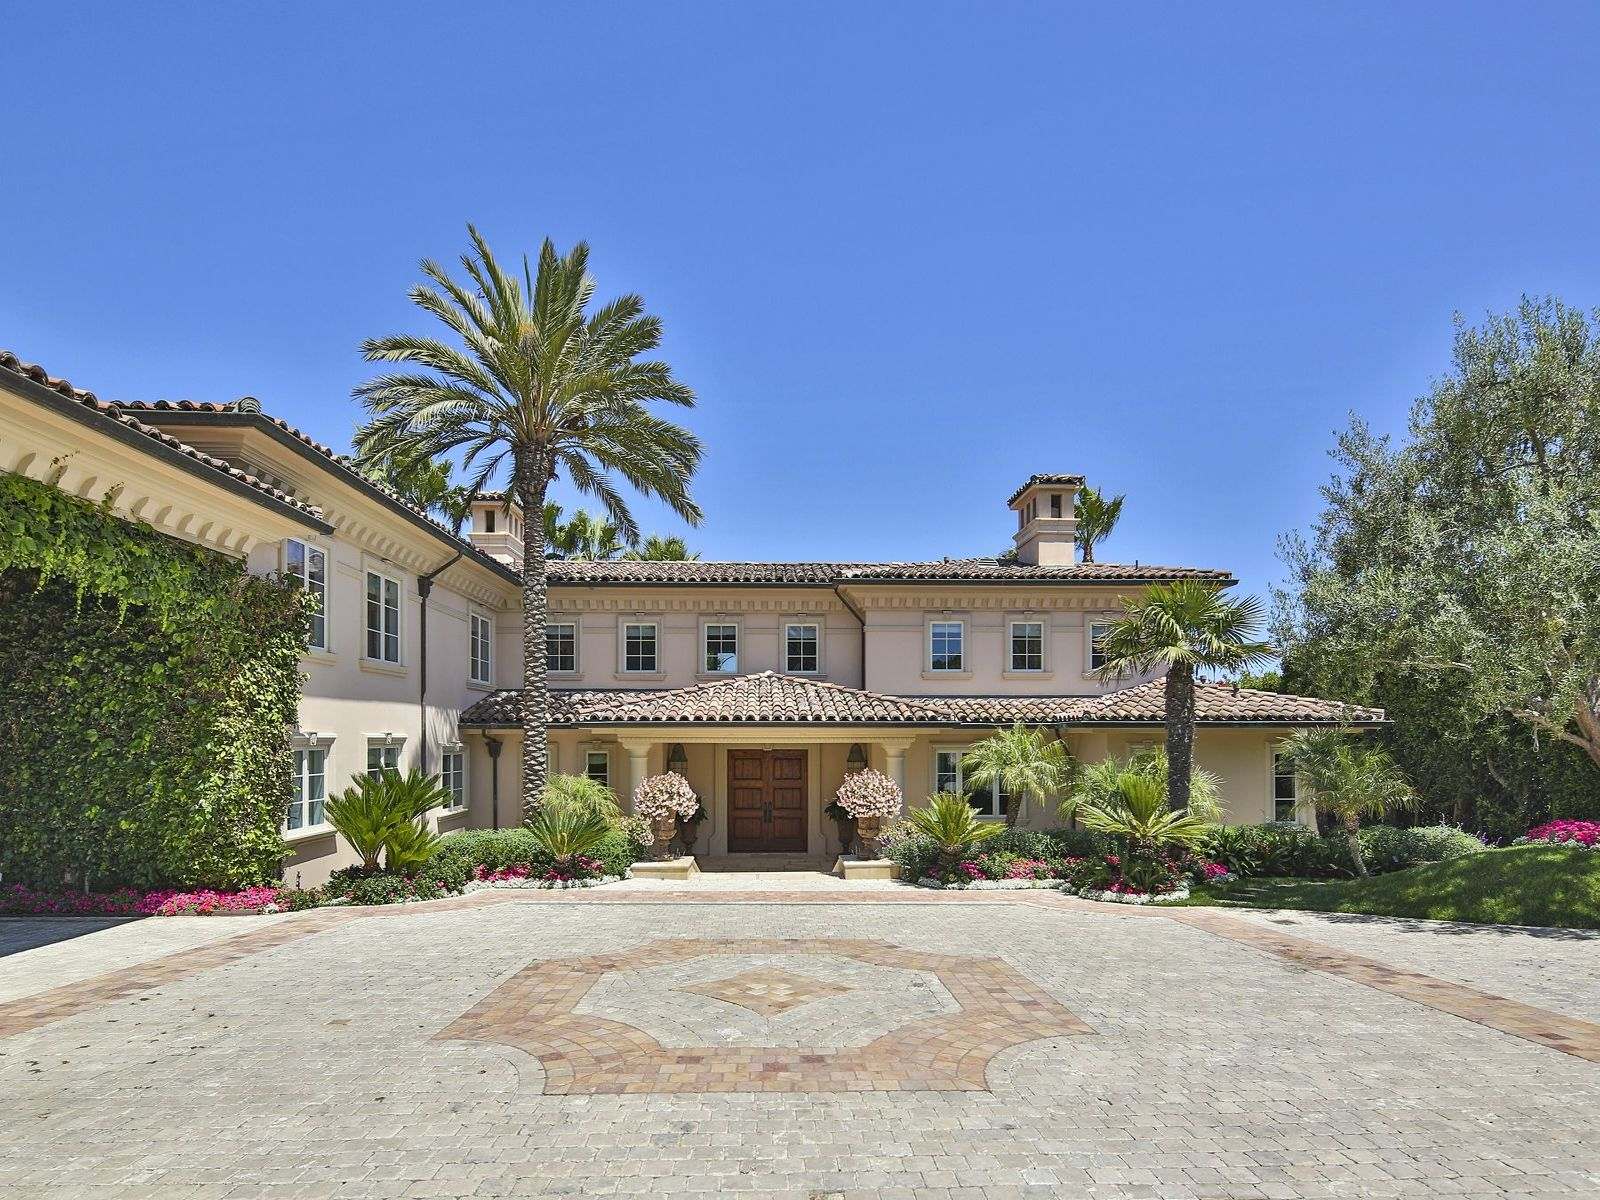 Exceptional European Style Villa, Malibu CA Single Family Home - Los Angeles Real Estate